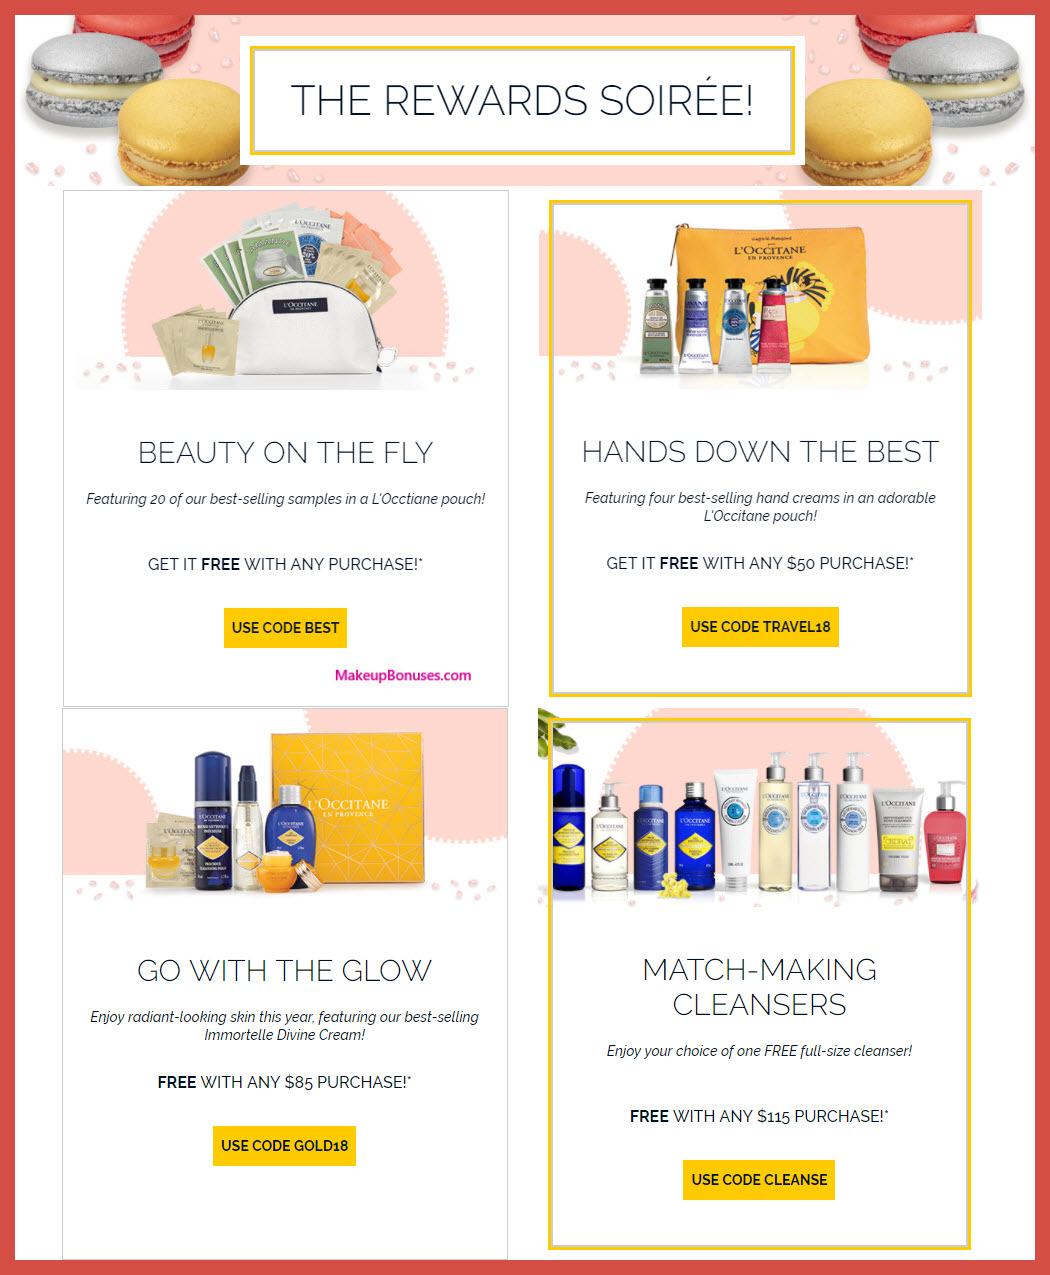 Receive your choice of 4-pc gift with $115 L'Occitane purchase